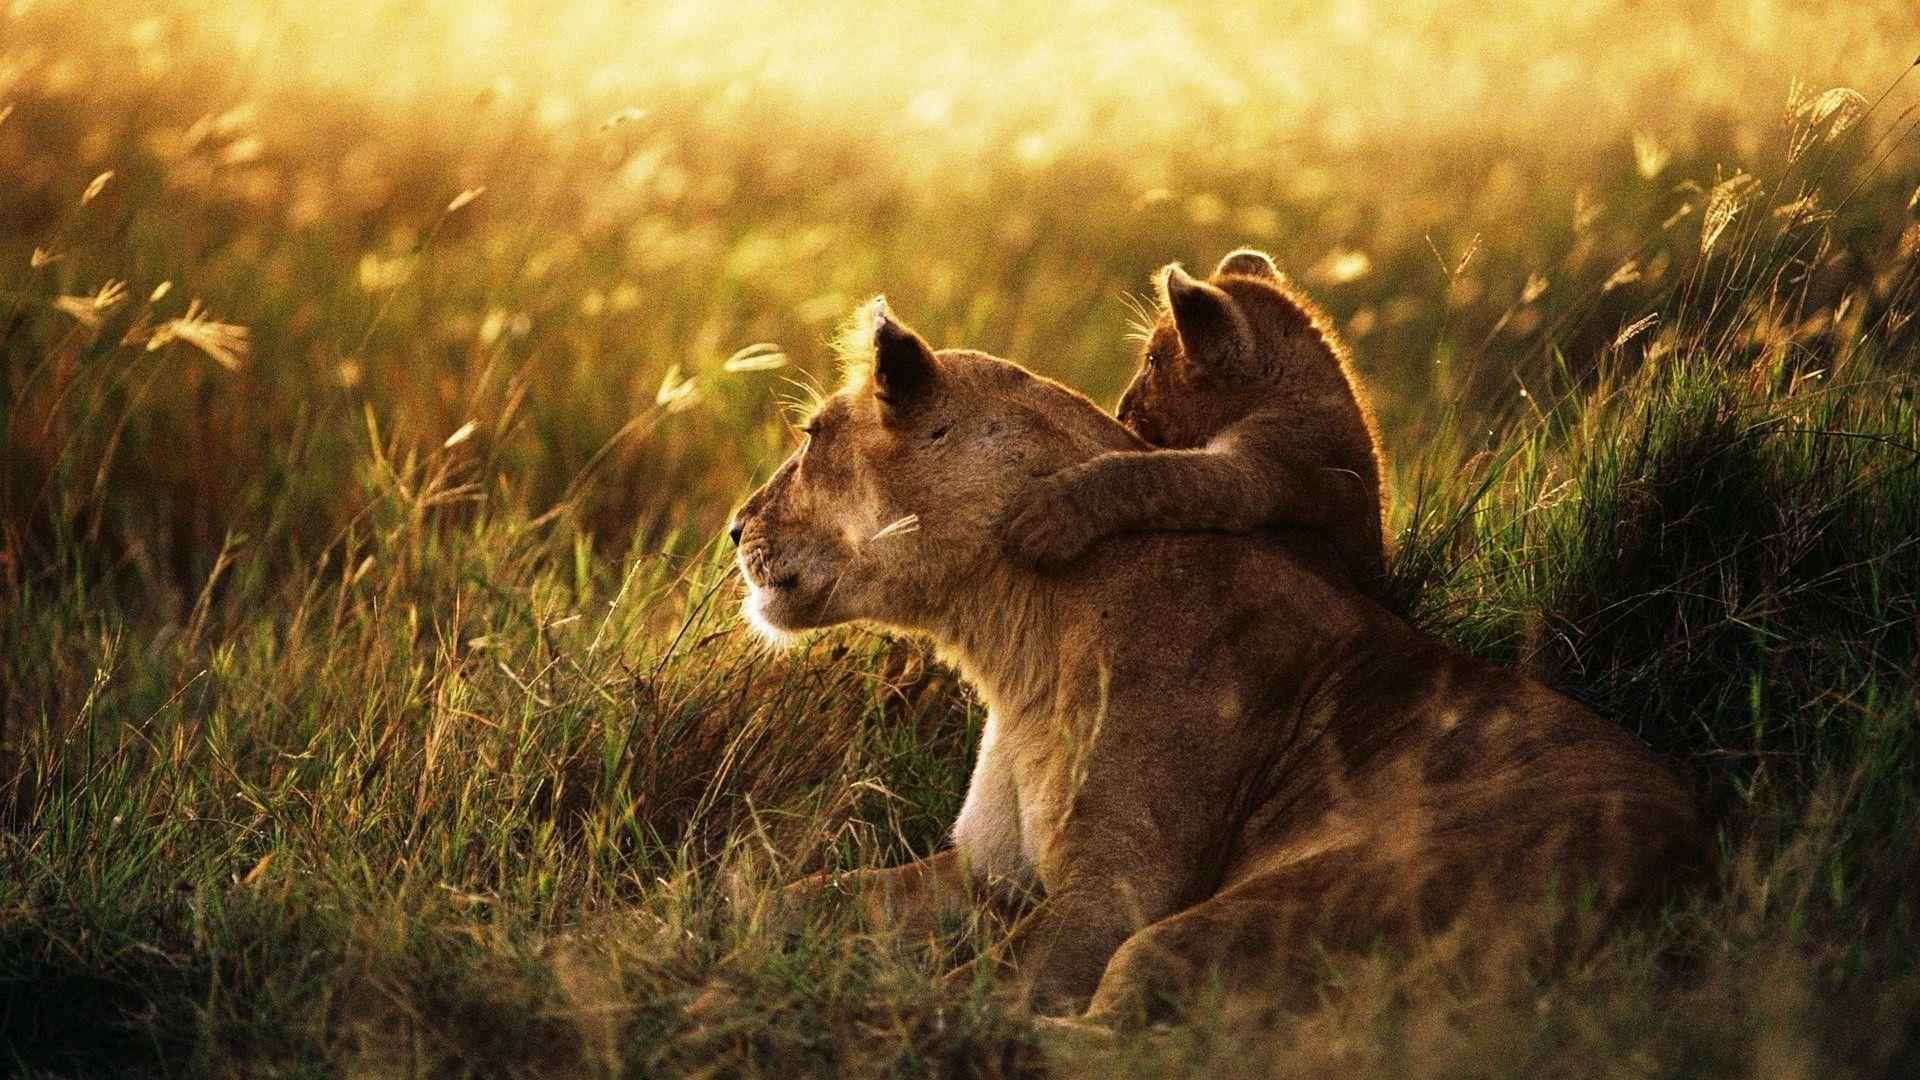 lion hd wallpapers 1024x768 - photo #28